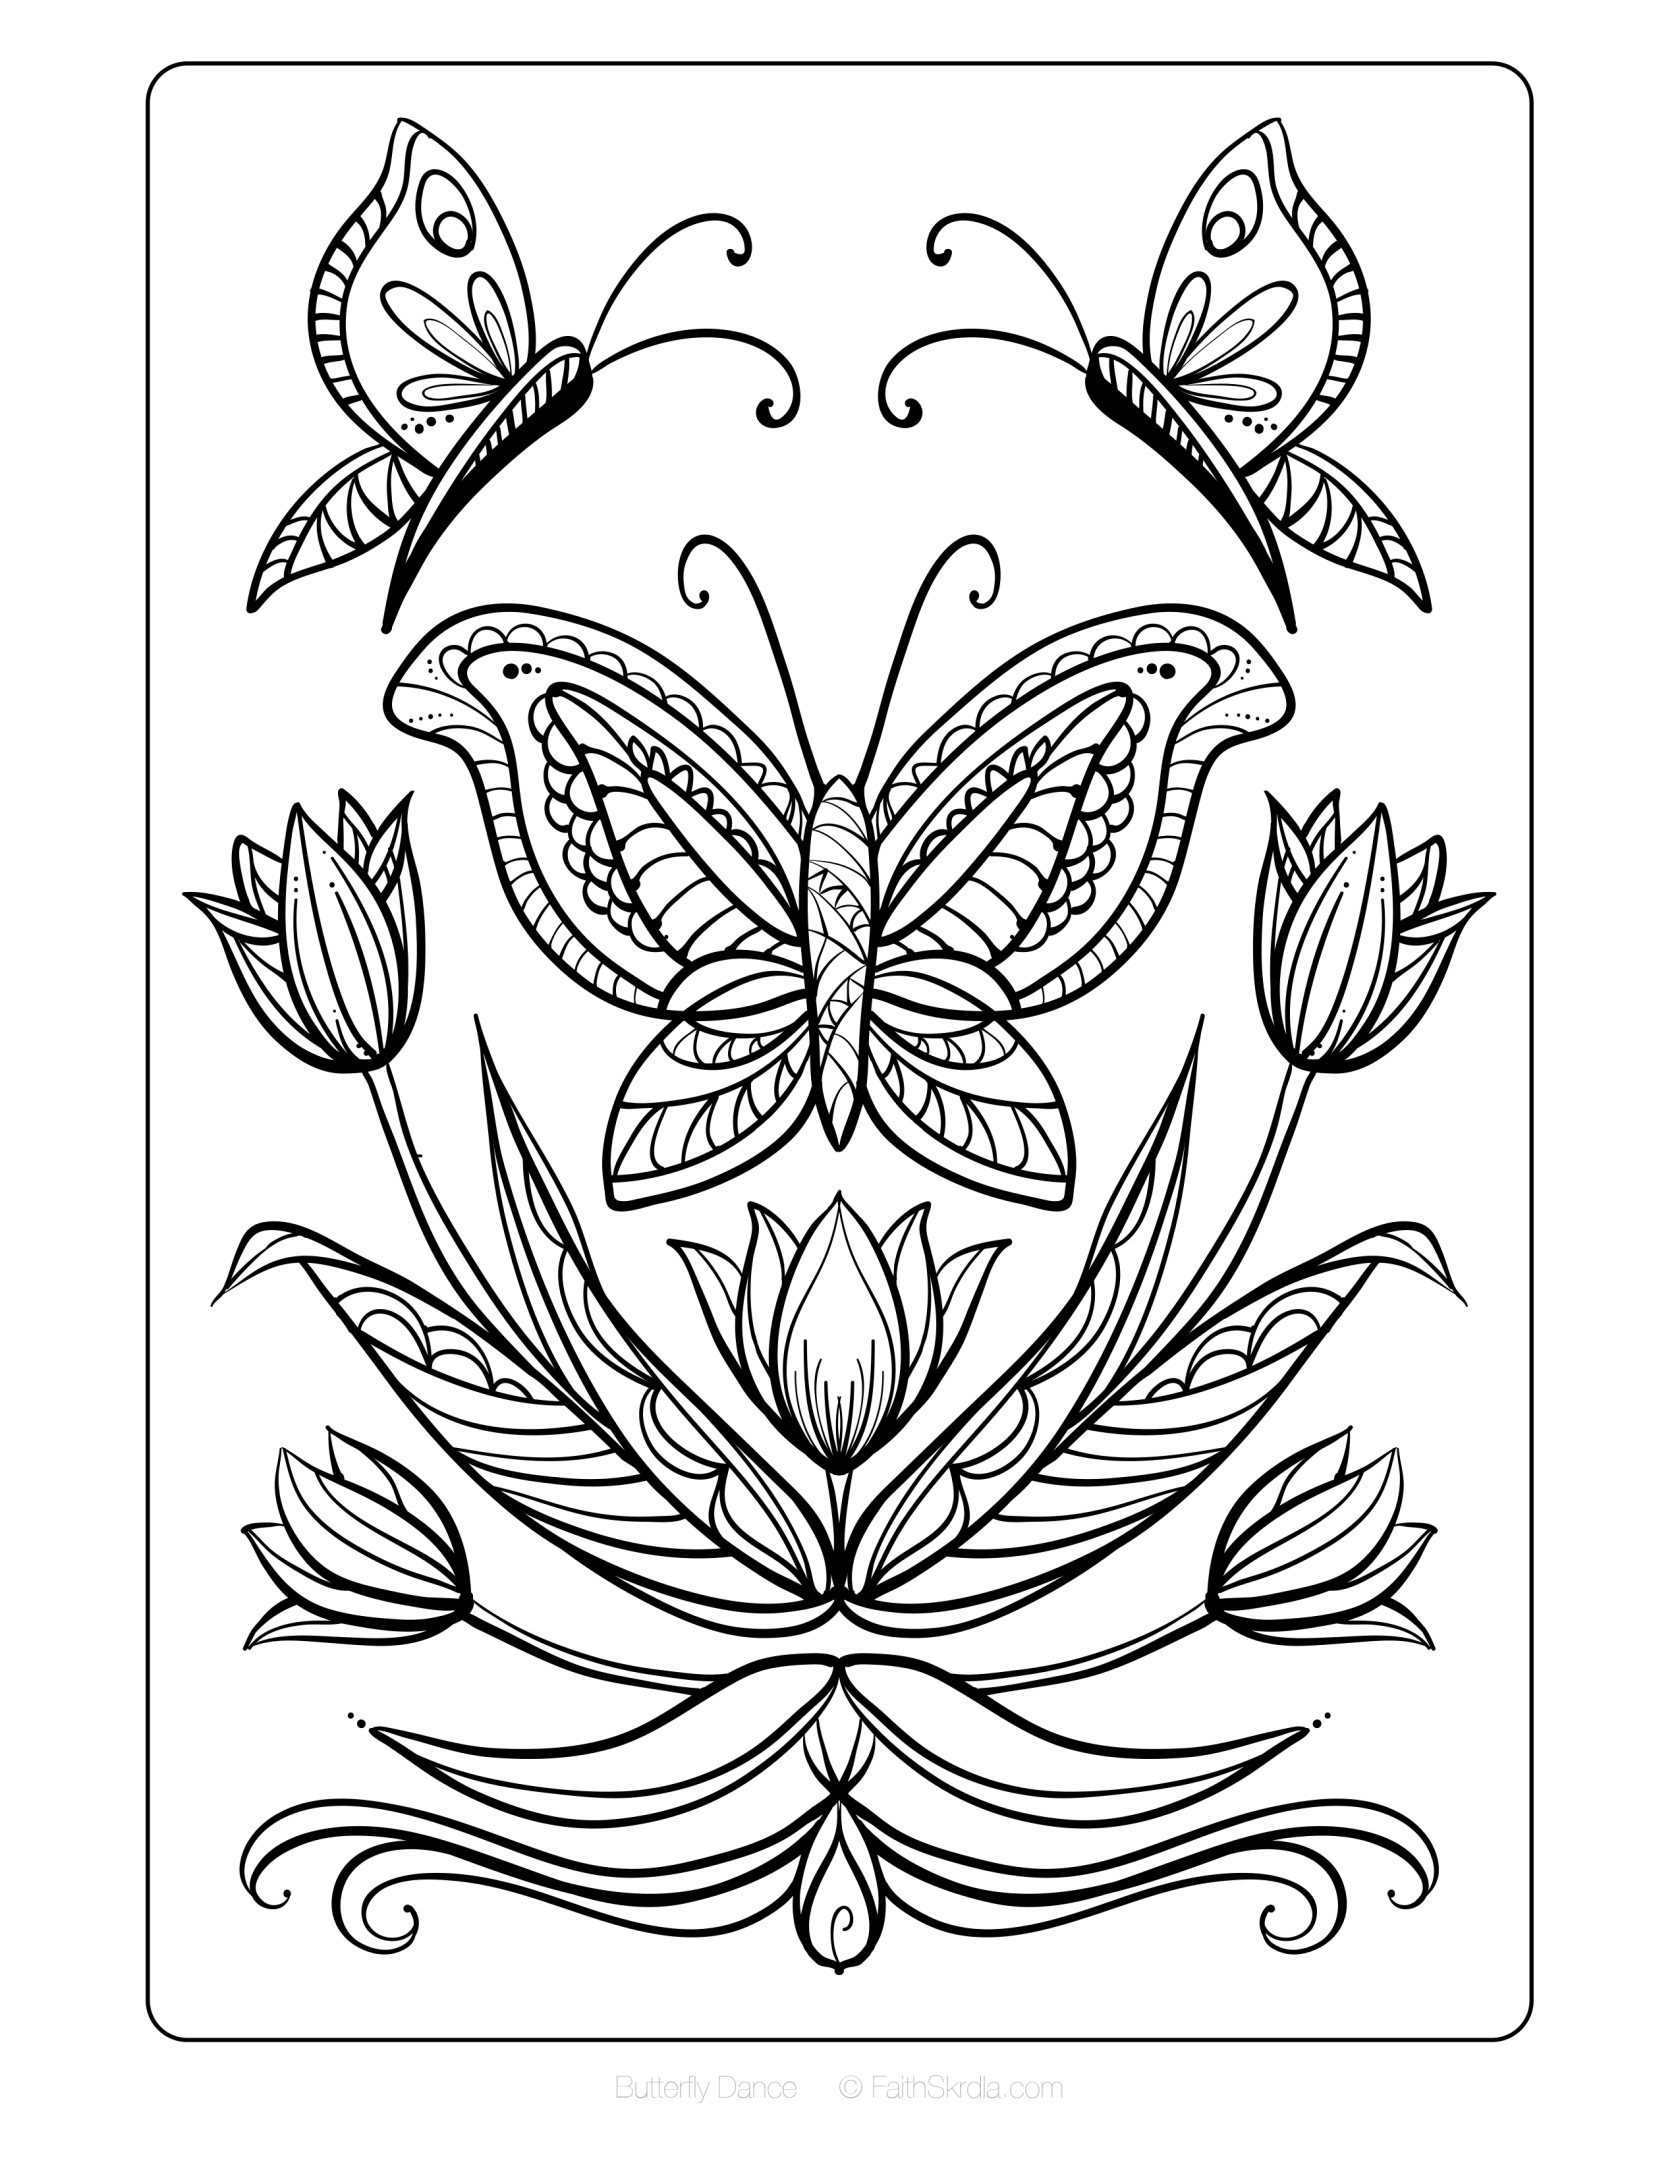 Butterfly Dance Free Adult Coloring Page By Faith Skrdla Free